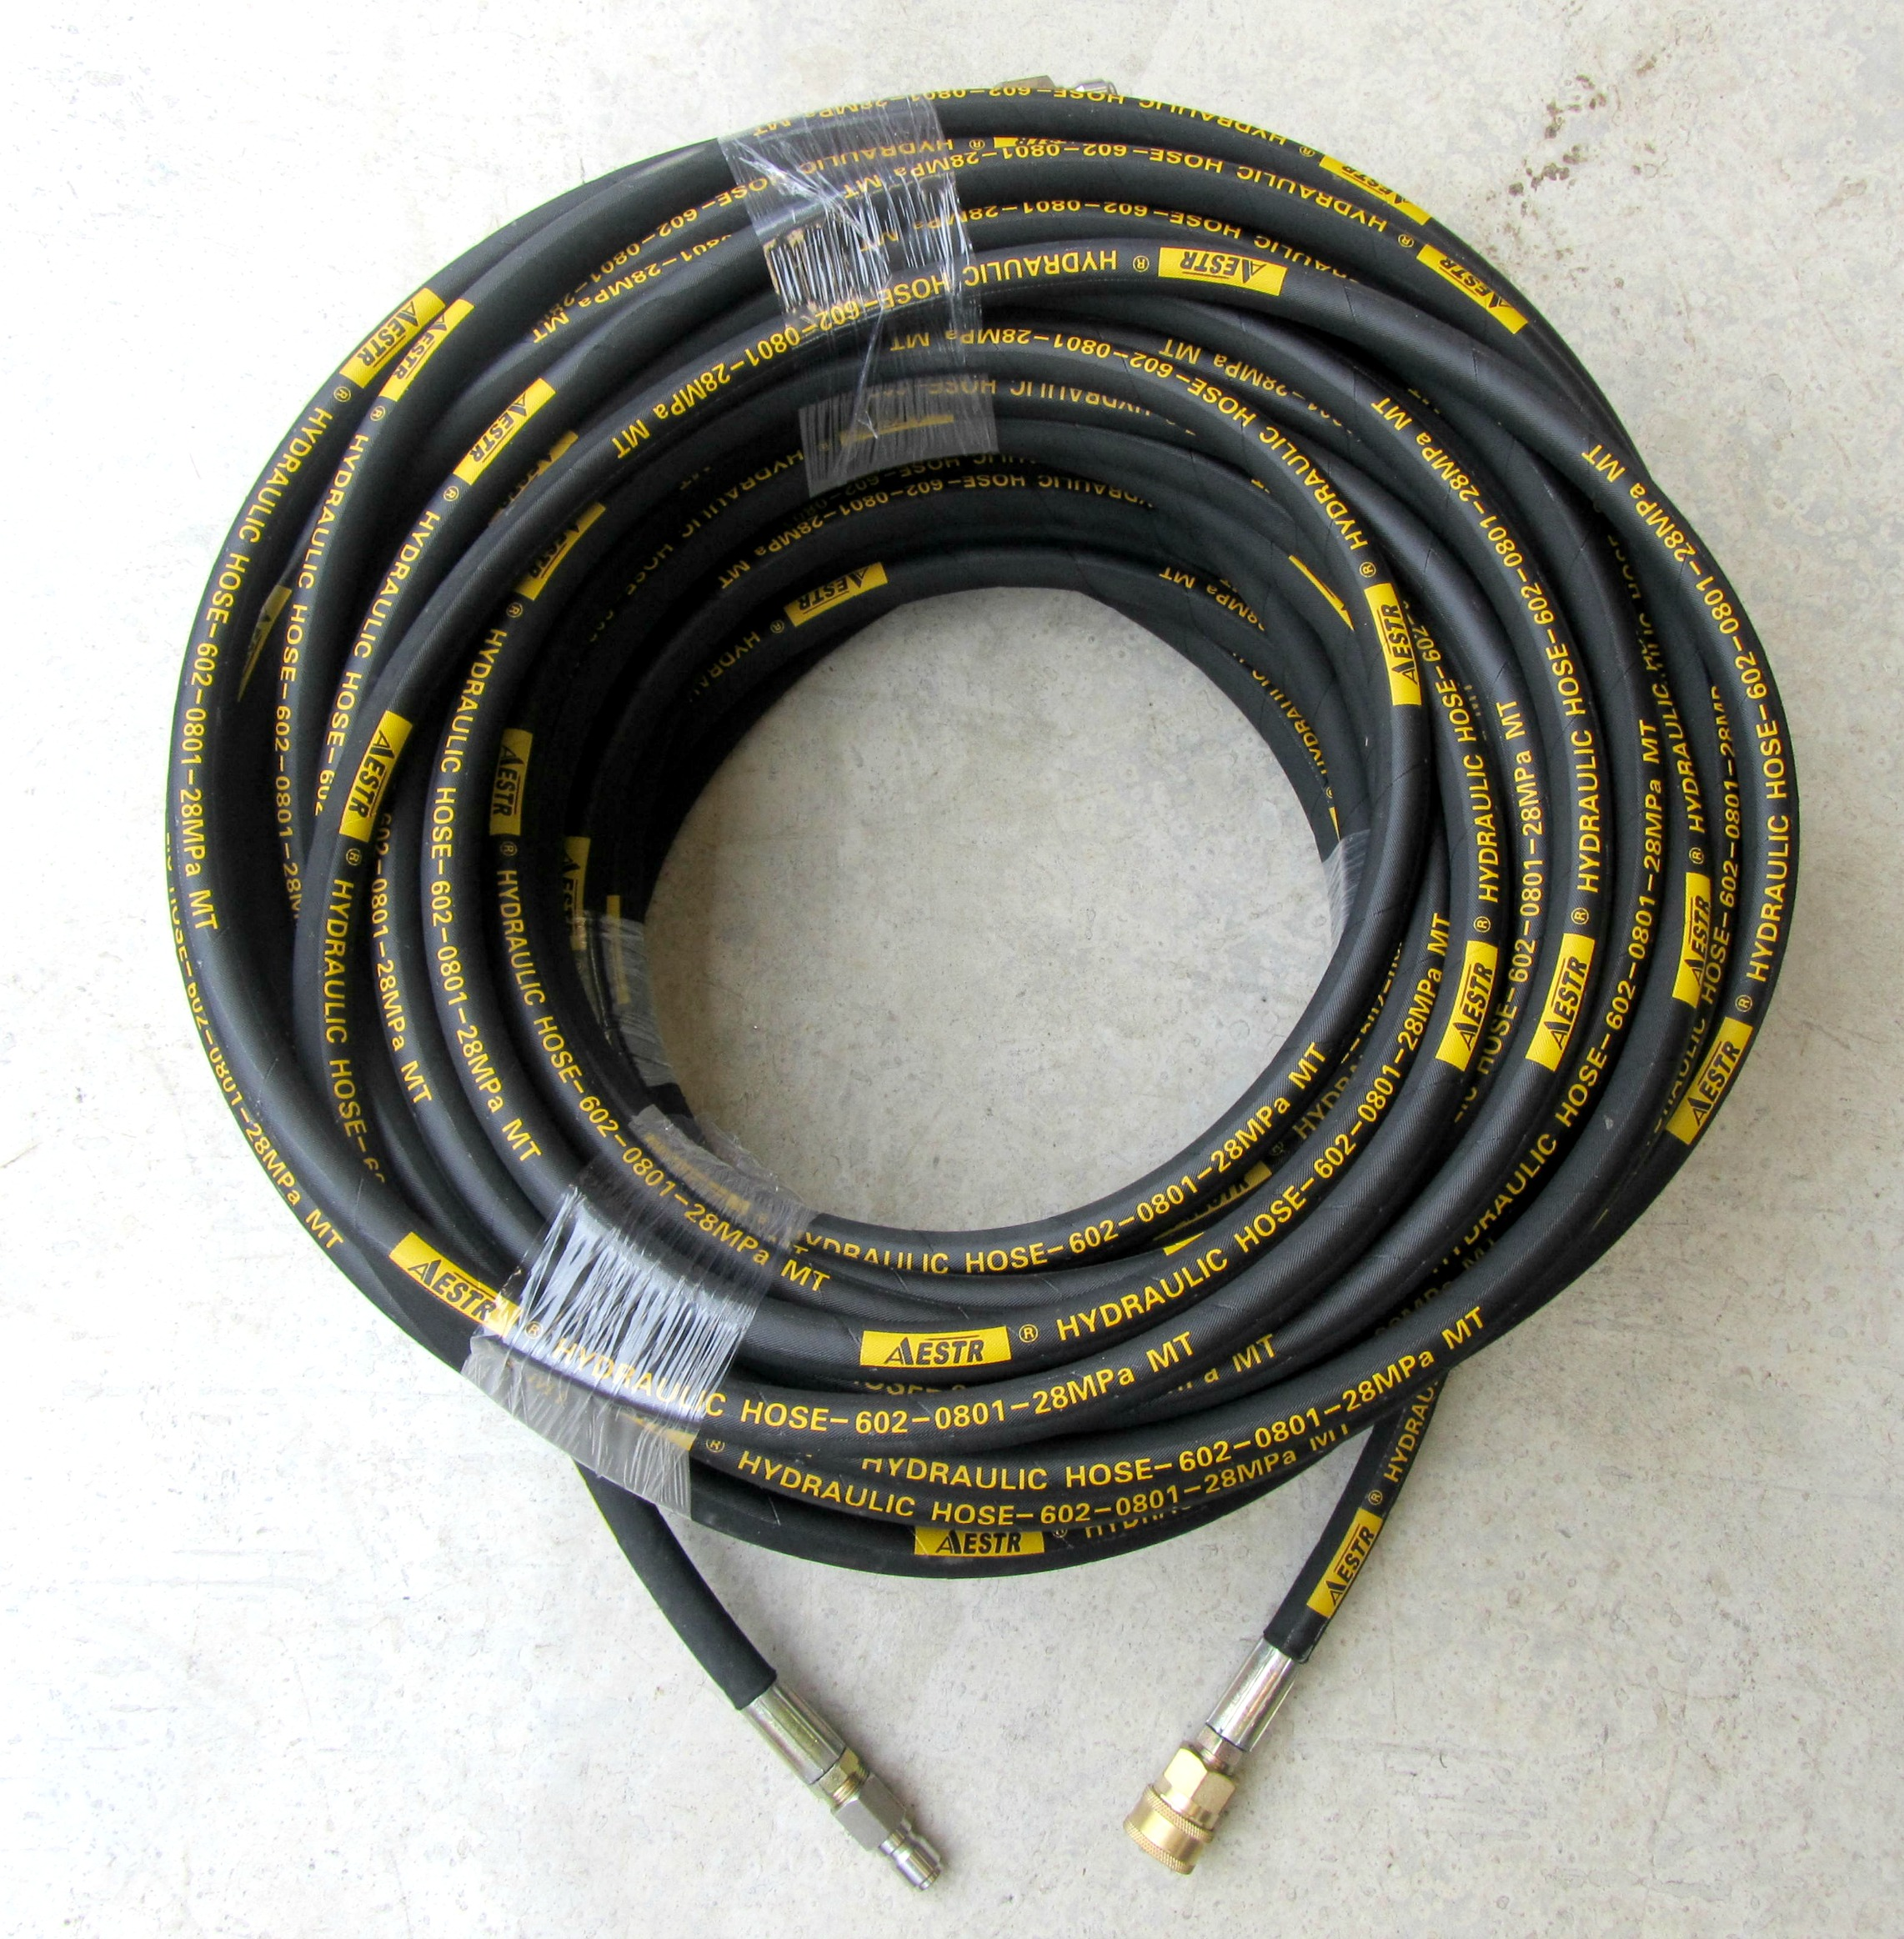 50 Metre Aestr Single Steel Braided High Pressure Hose with Quick Connection Fittings